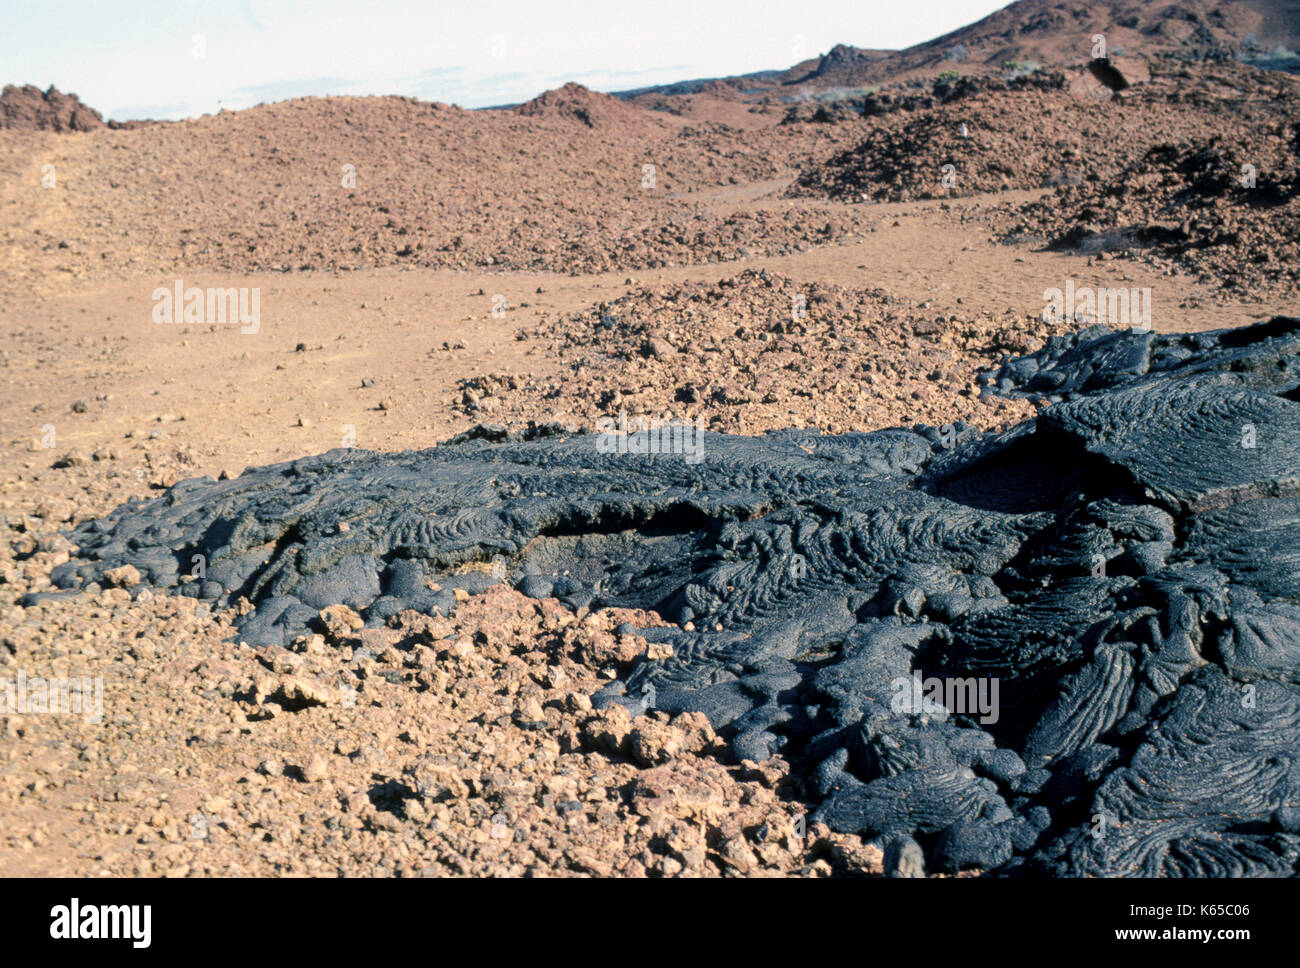 Pahoehoe Lava, Bartolome  Island, Galapagos Islands, basaltic, ropy surface, showing flow on ground - Stock Image